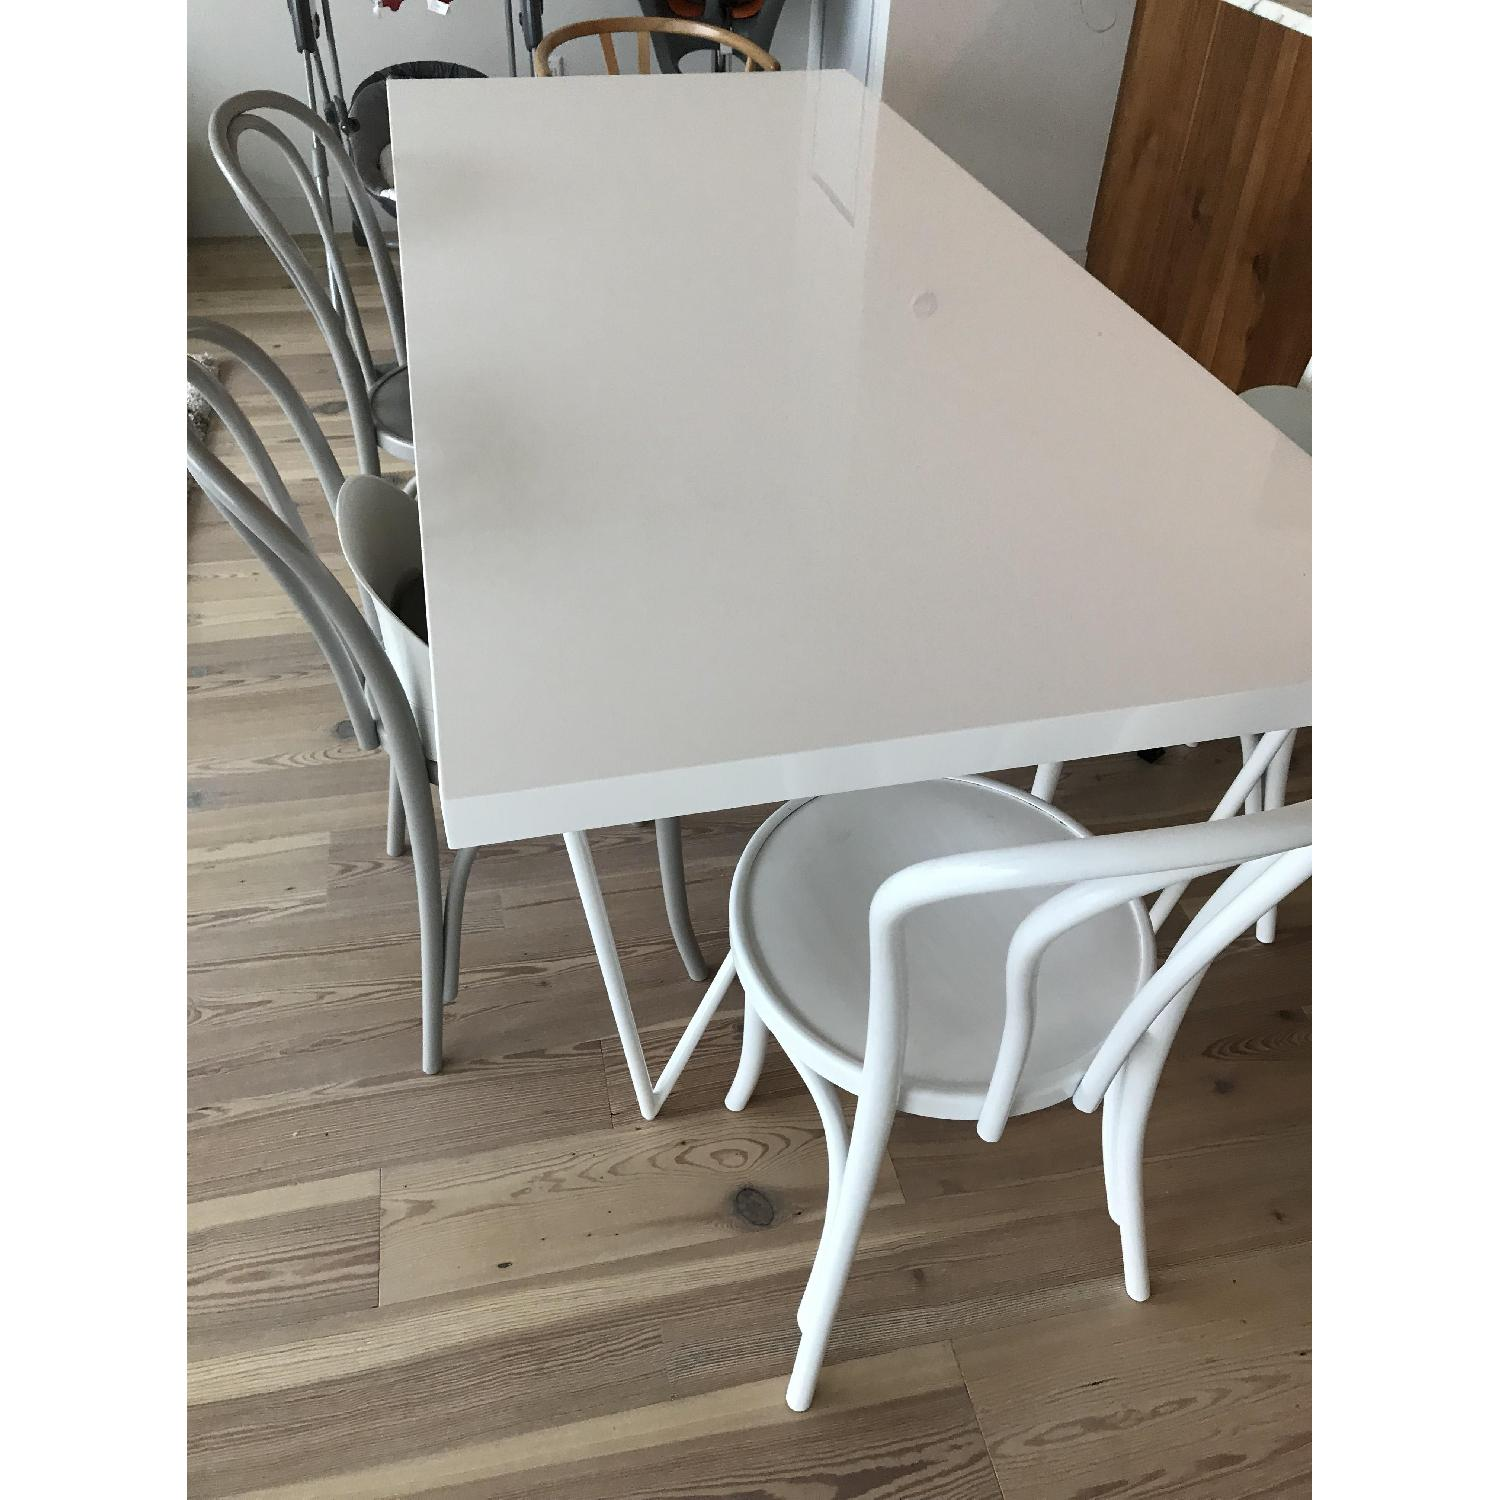 CB Dylan Dining Table AptDeco - Cb2 dining room table